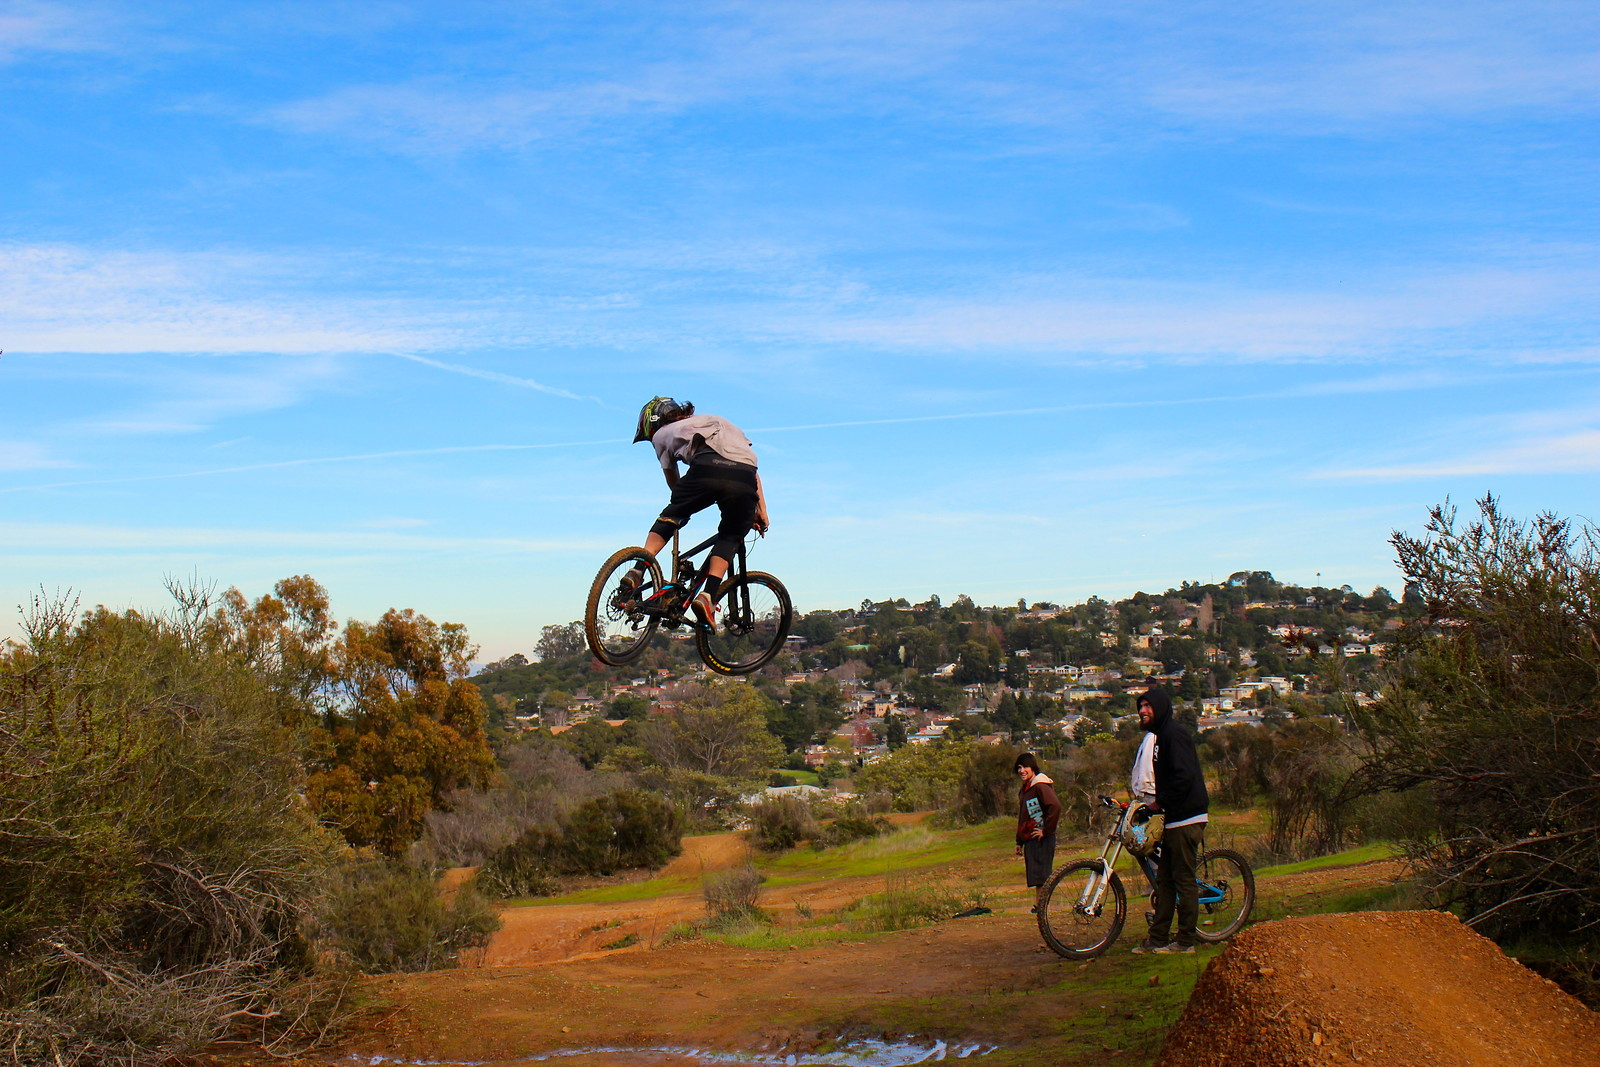 Carlmont Booter - Scharney127 - Mountain Biking Pictures - Vital MTB